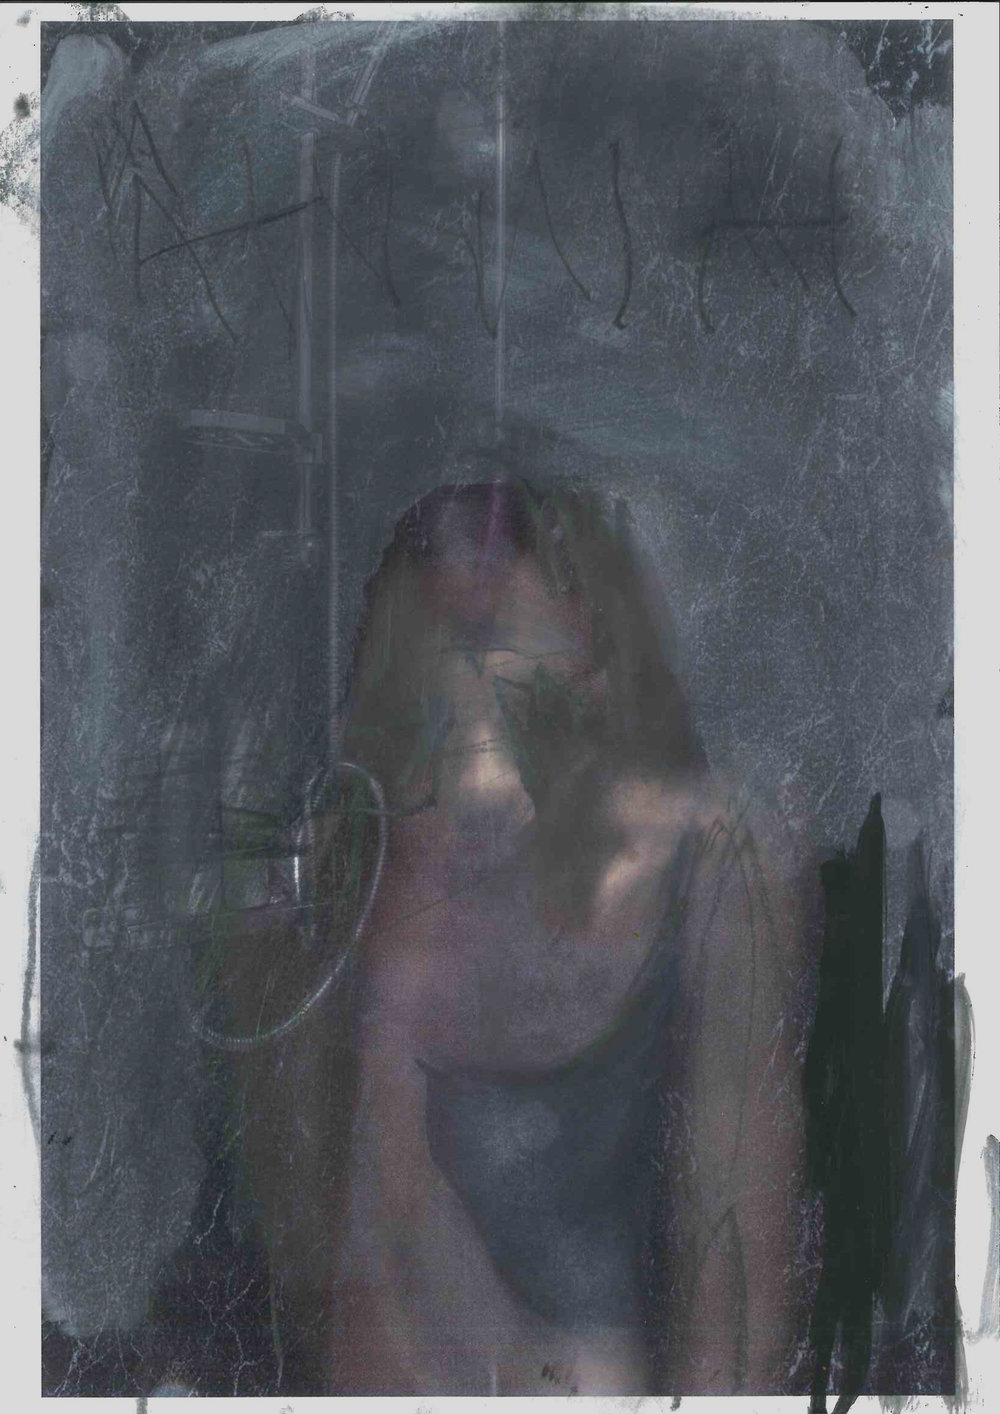 Study For Anima 1:1, oil on paper with photographic element